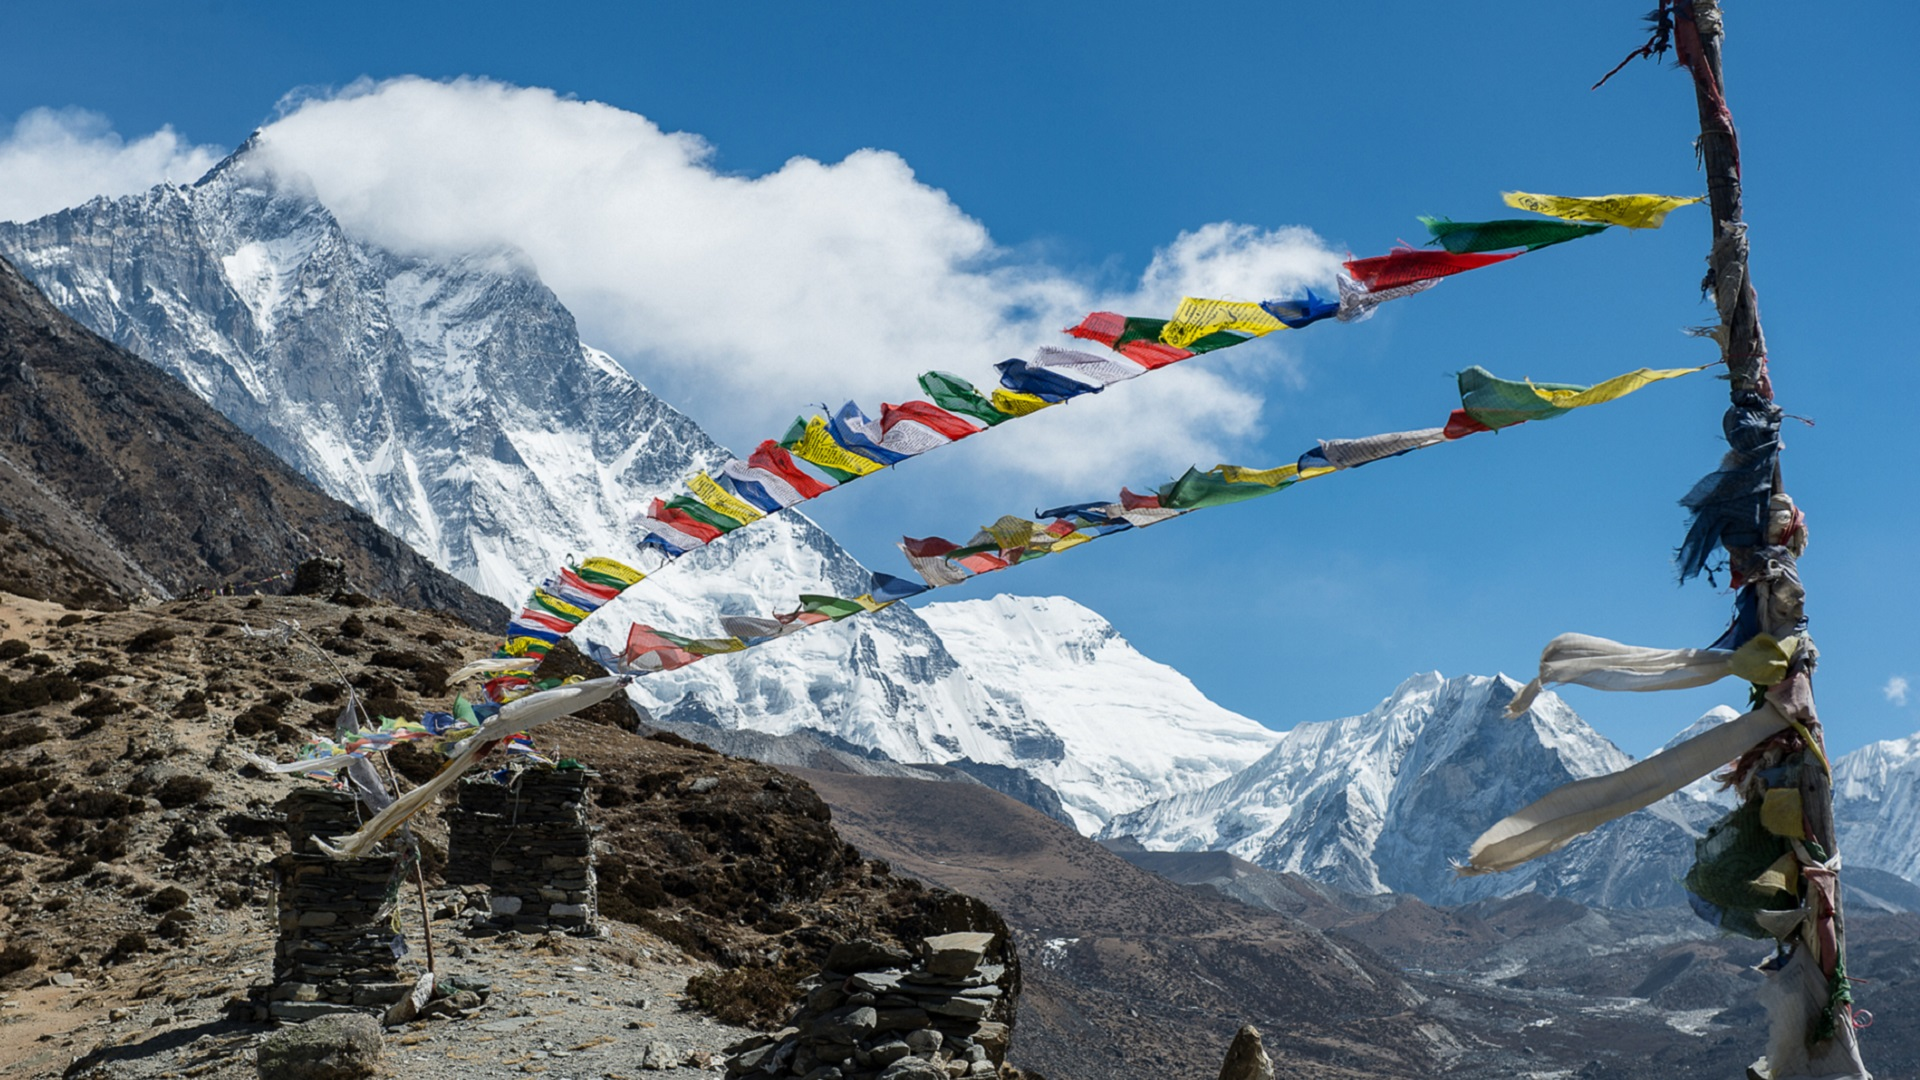 Mountaineering_mt everest_everest base camp